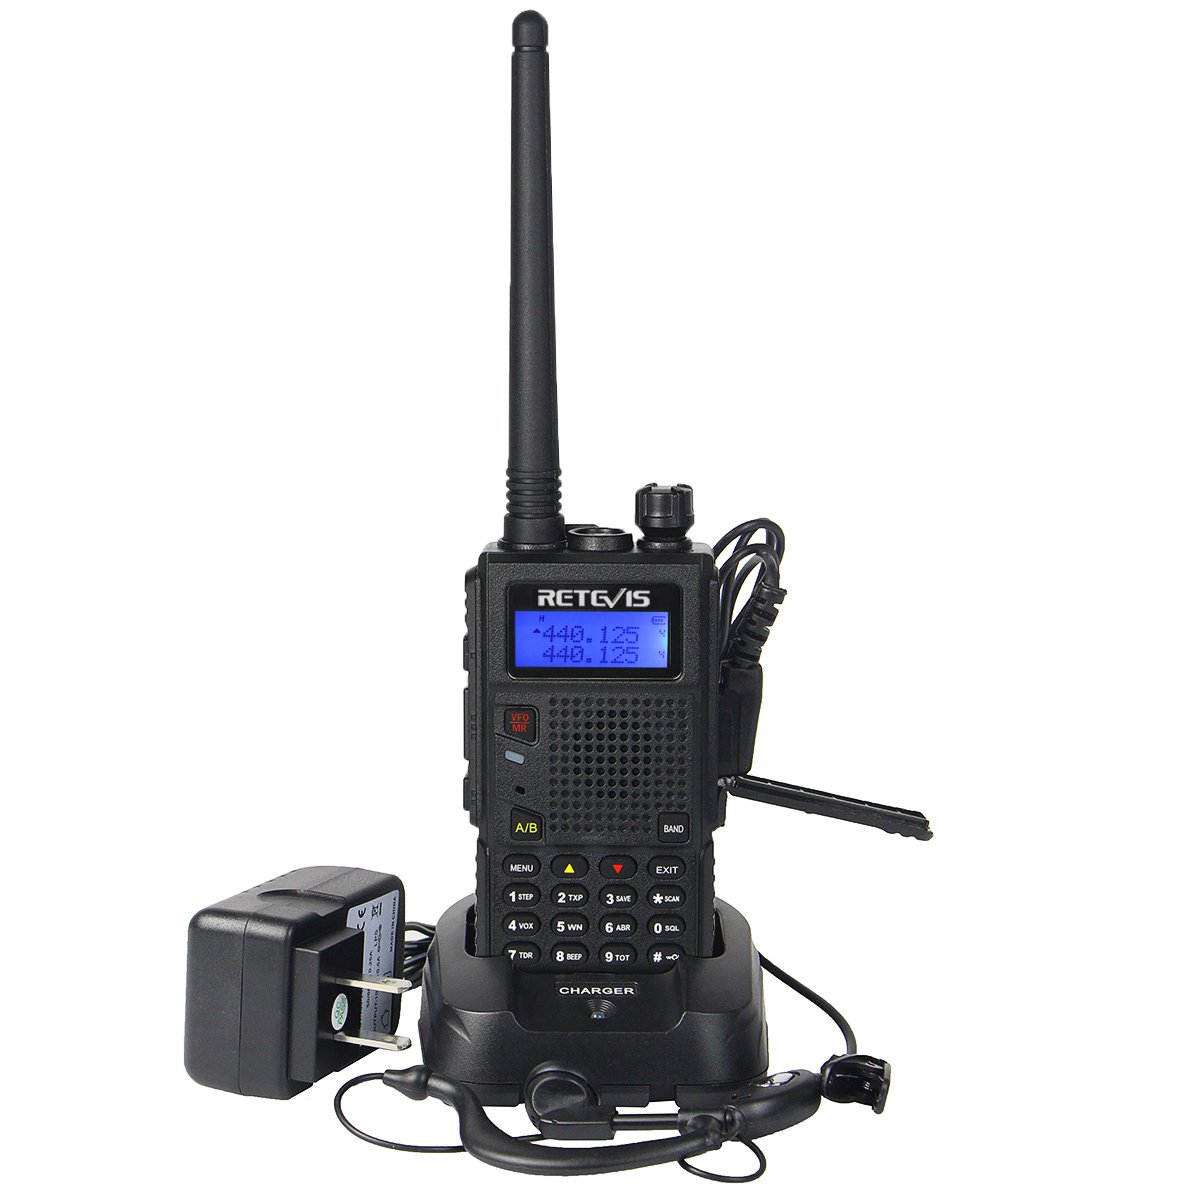 1 Pack Retevis RT5 Two Way Radio with 128 Channels VHF//UHF Dual Band Scan VOX DTMF FM Car Charging Walkie Talkie 568722C053B7C030